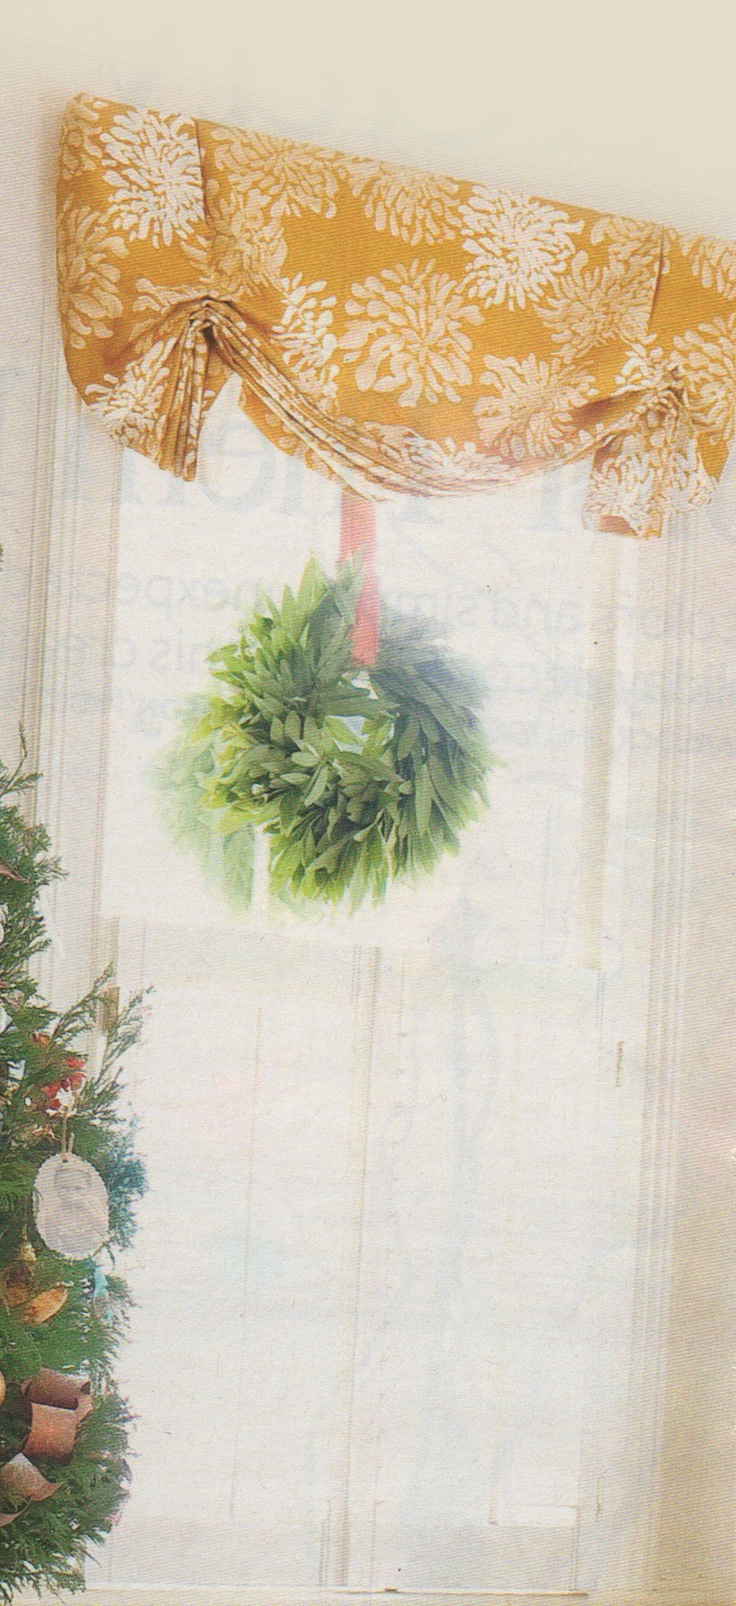 Balloon curtains kitchen - Window Wreath With Balloon Curtain Kitchen French Country